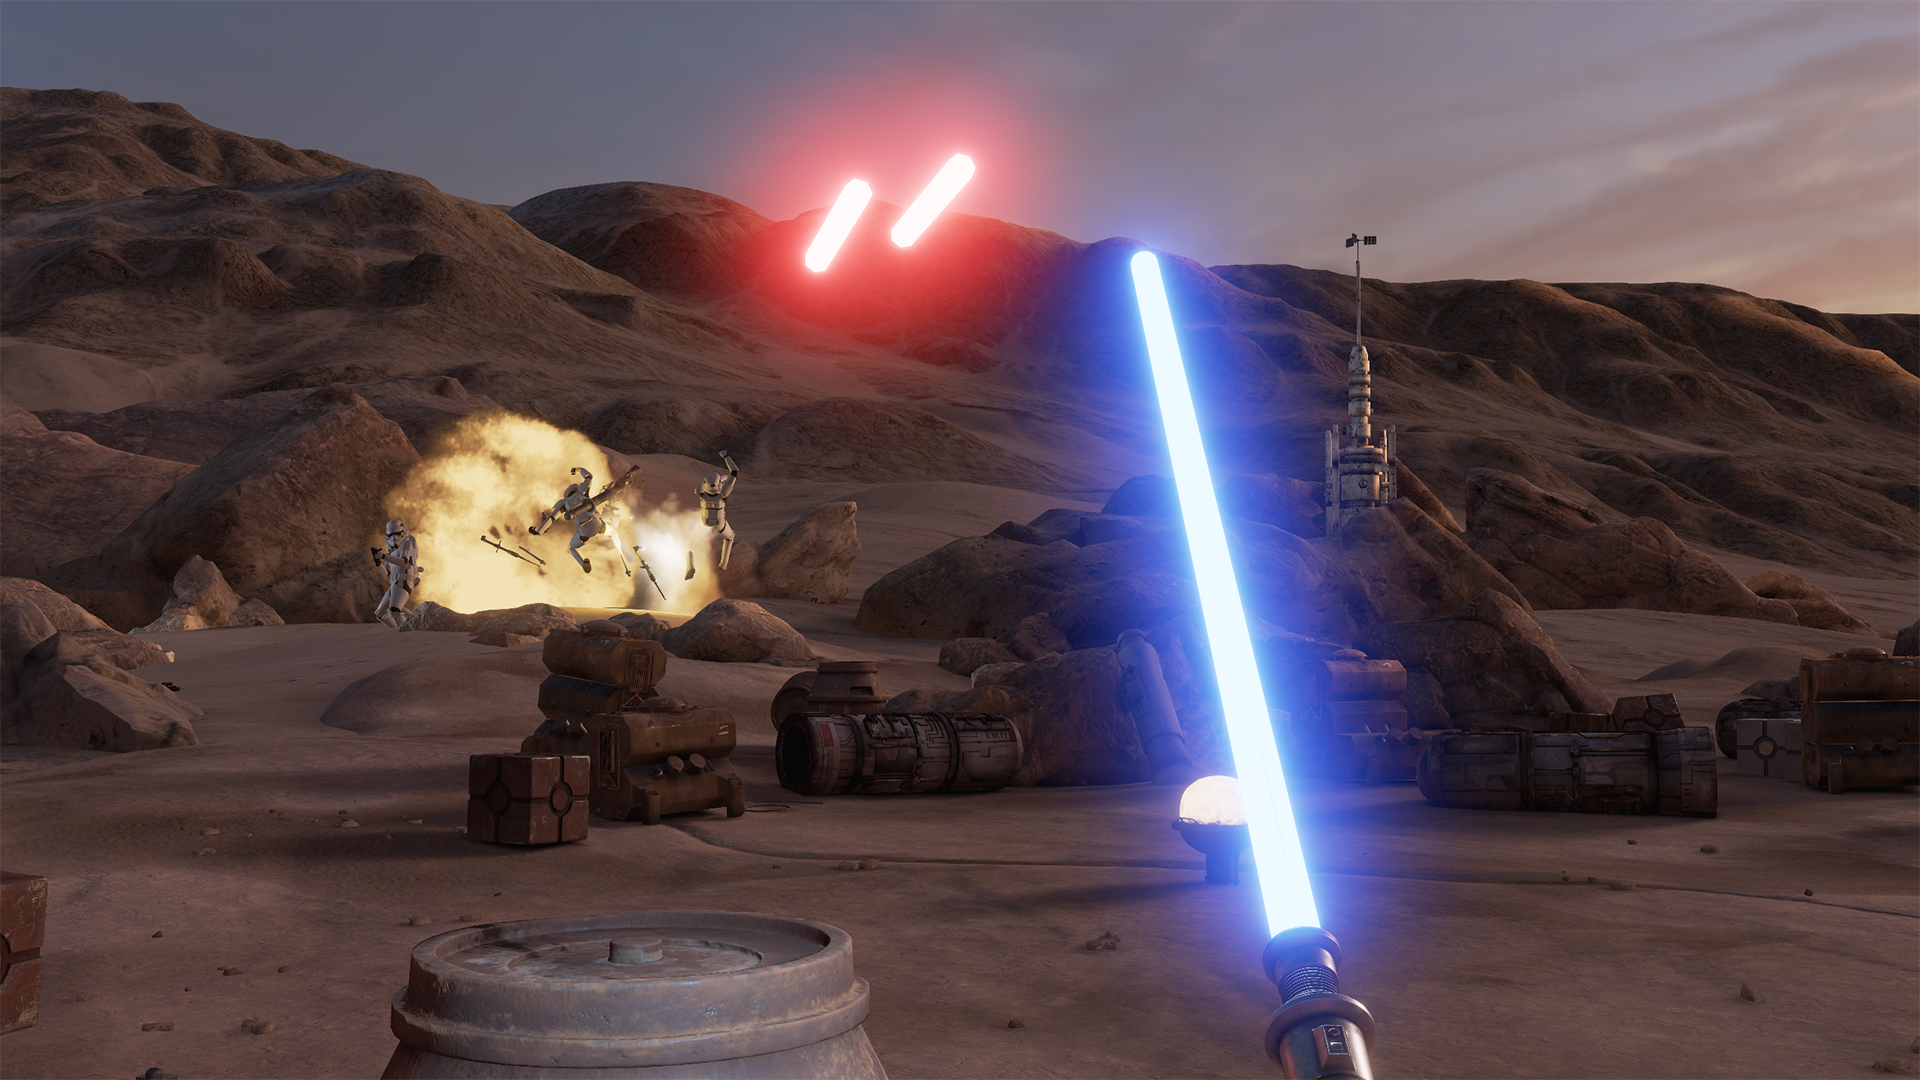 Star Wars Trials on Tatooine is an HTC Vive virtual reality experience developed by ILMxLab.